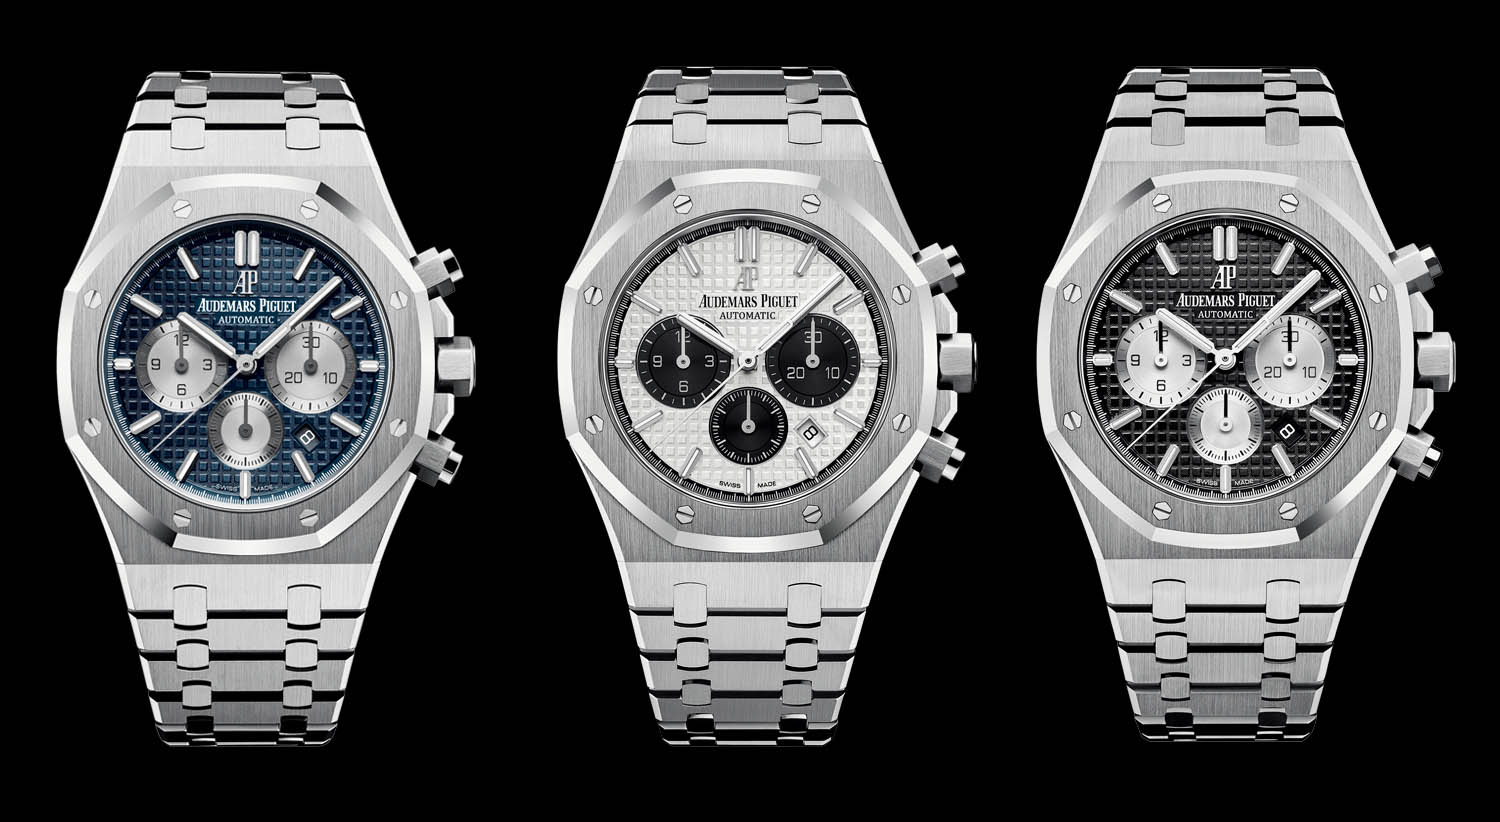 Audemars Piguet Royal Oak Chronograph - SIHH 2017